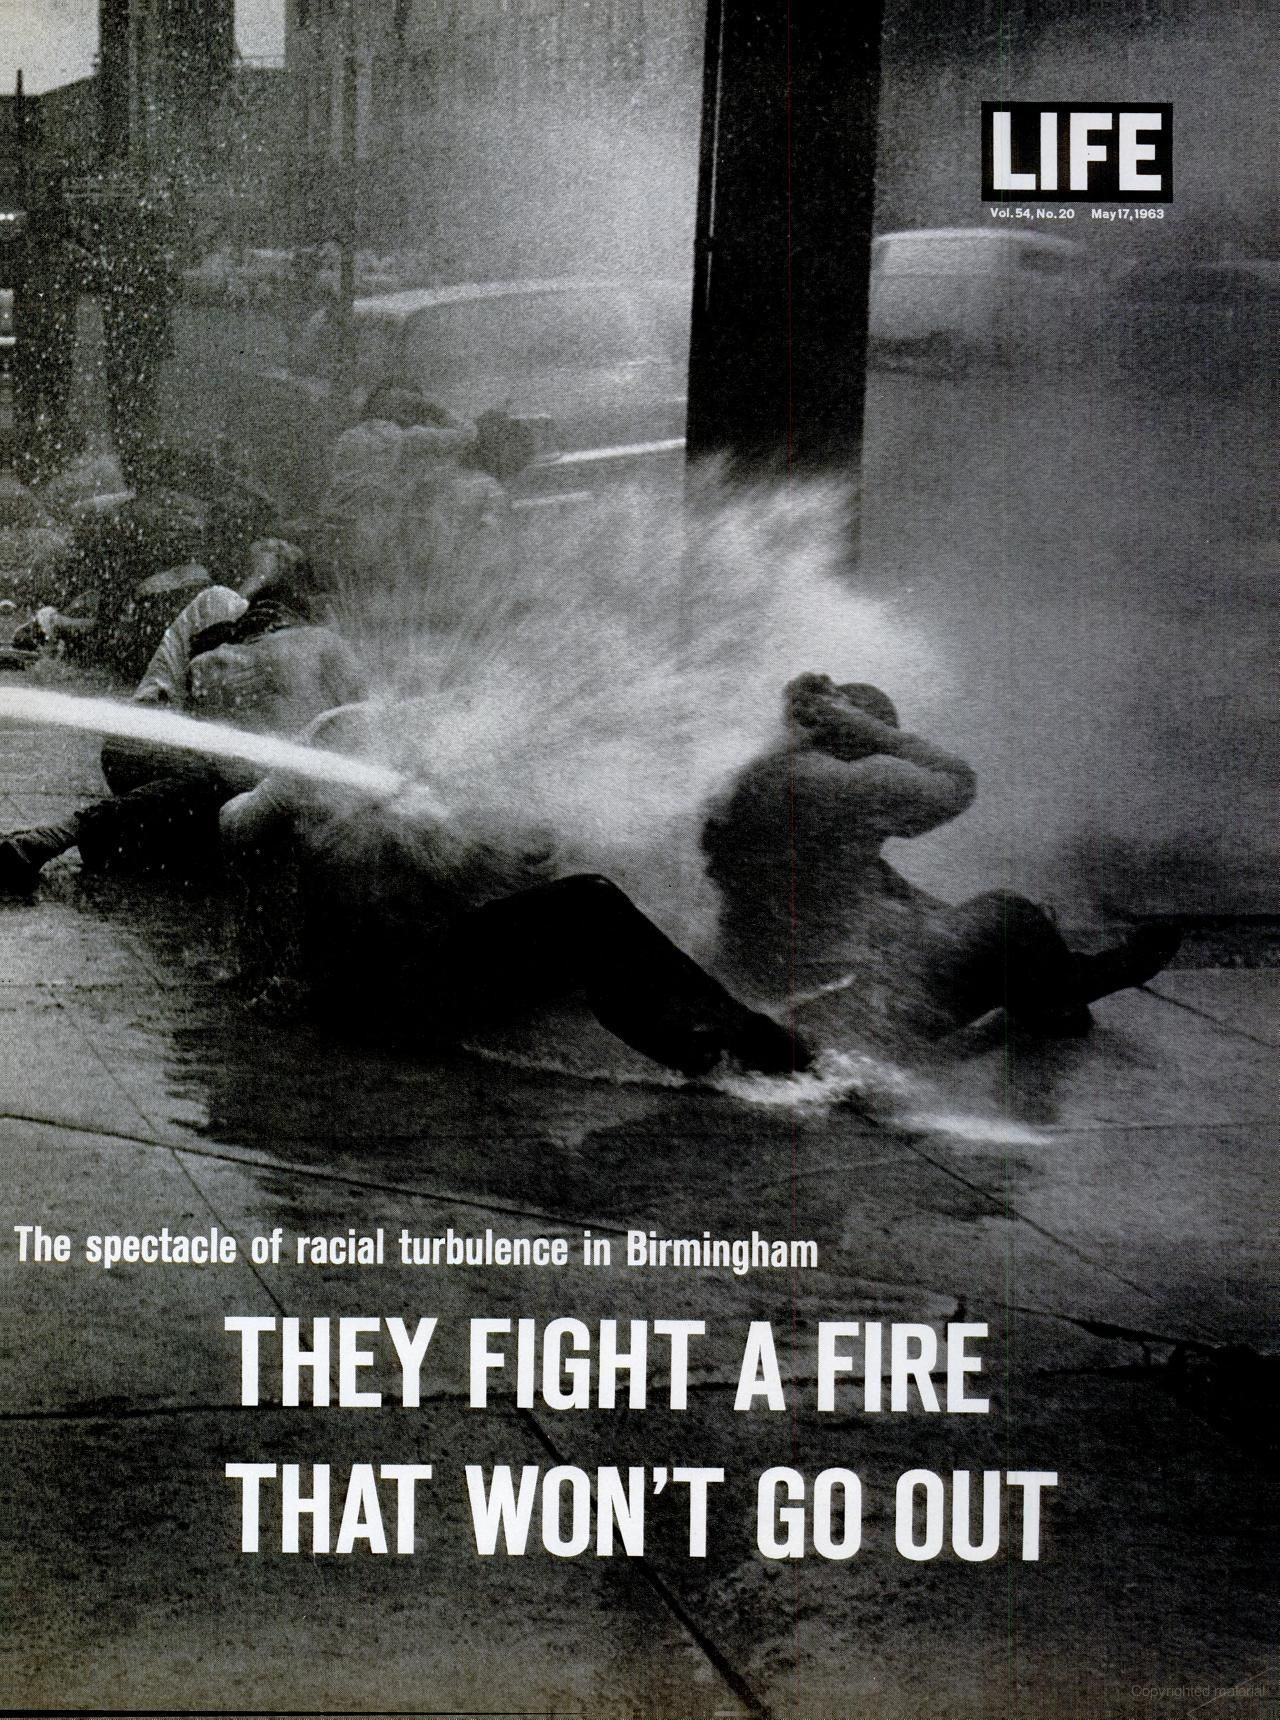 life magazine 17 1963 birmingham campaign in the us civil life magazine 17 1963 birmingham campaign in the us civil rights movement photo